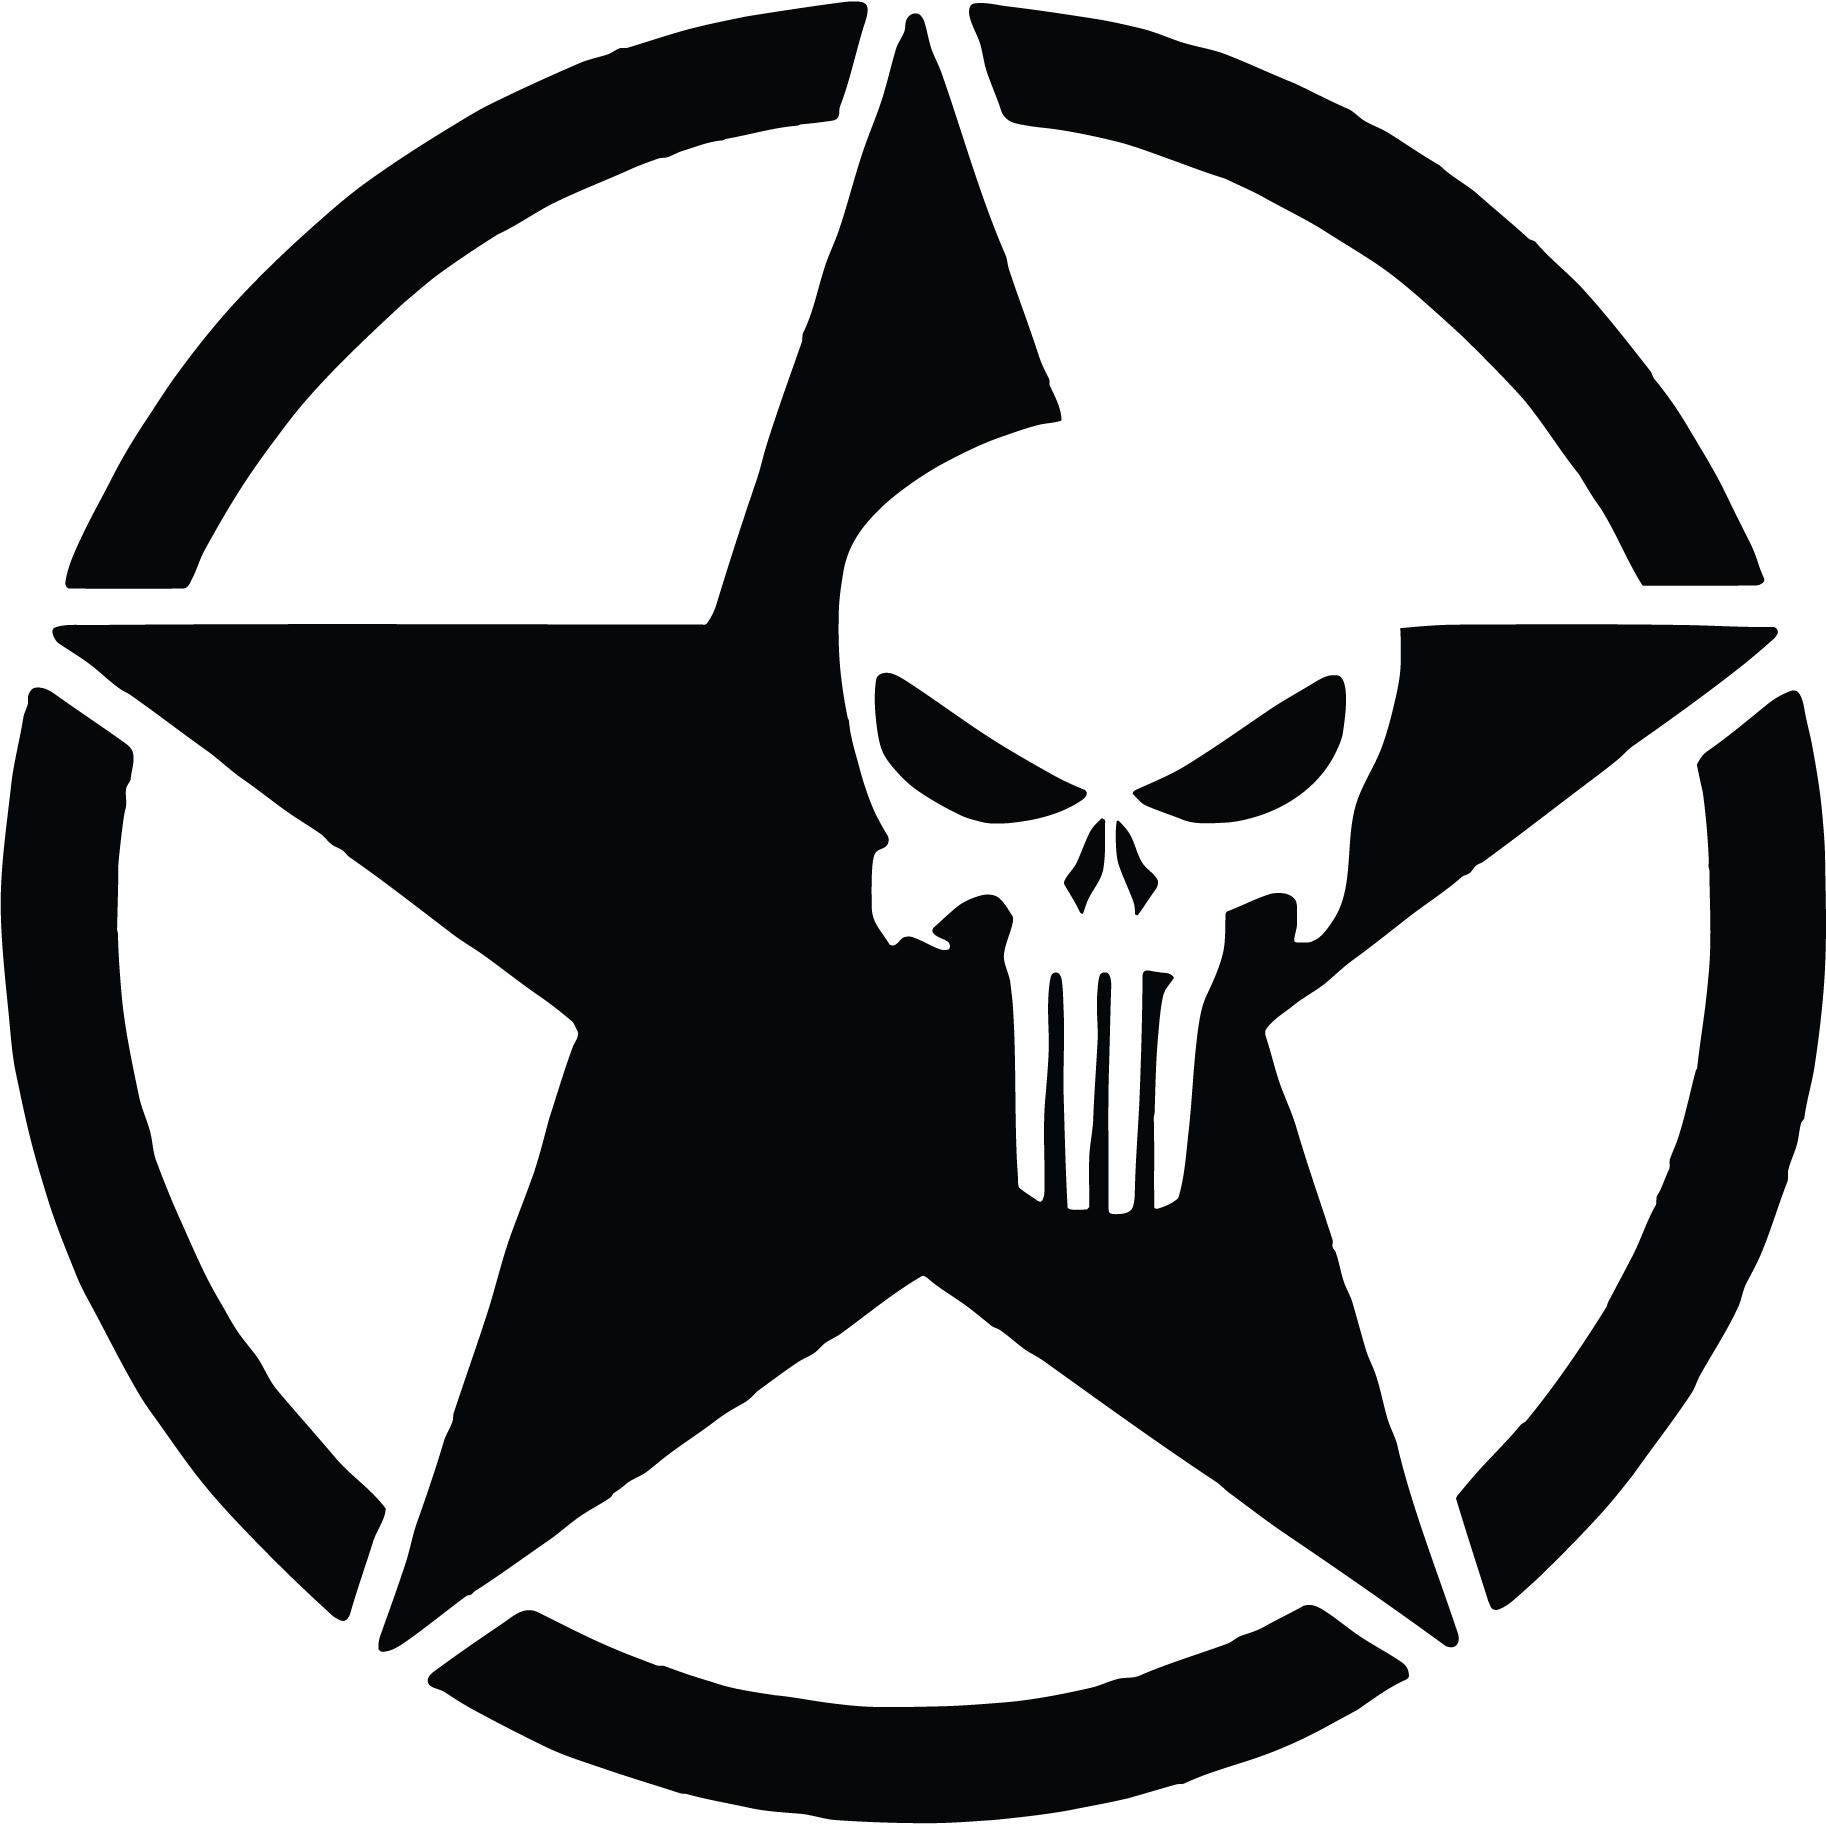 Us army star png. Punisher skull vinyl graphic